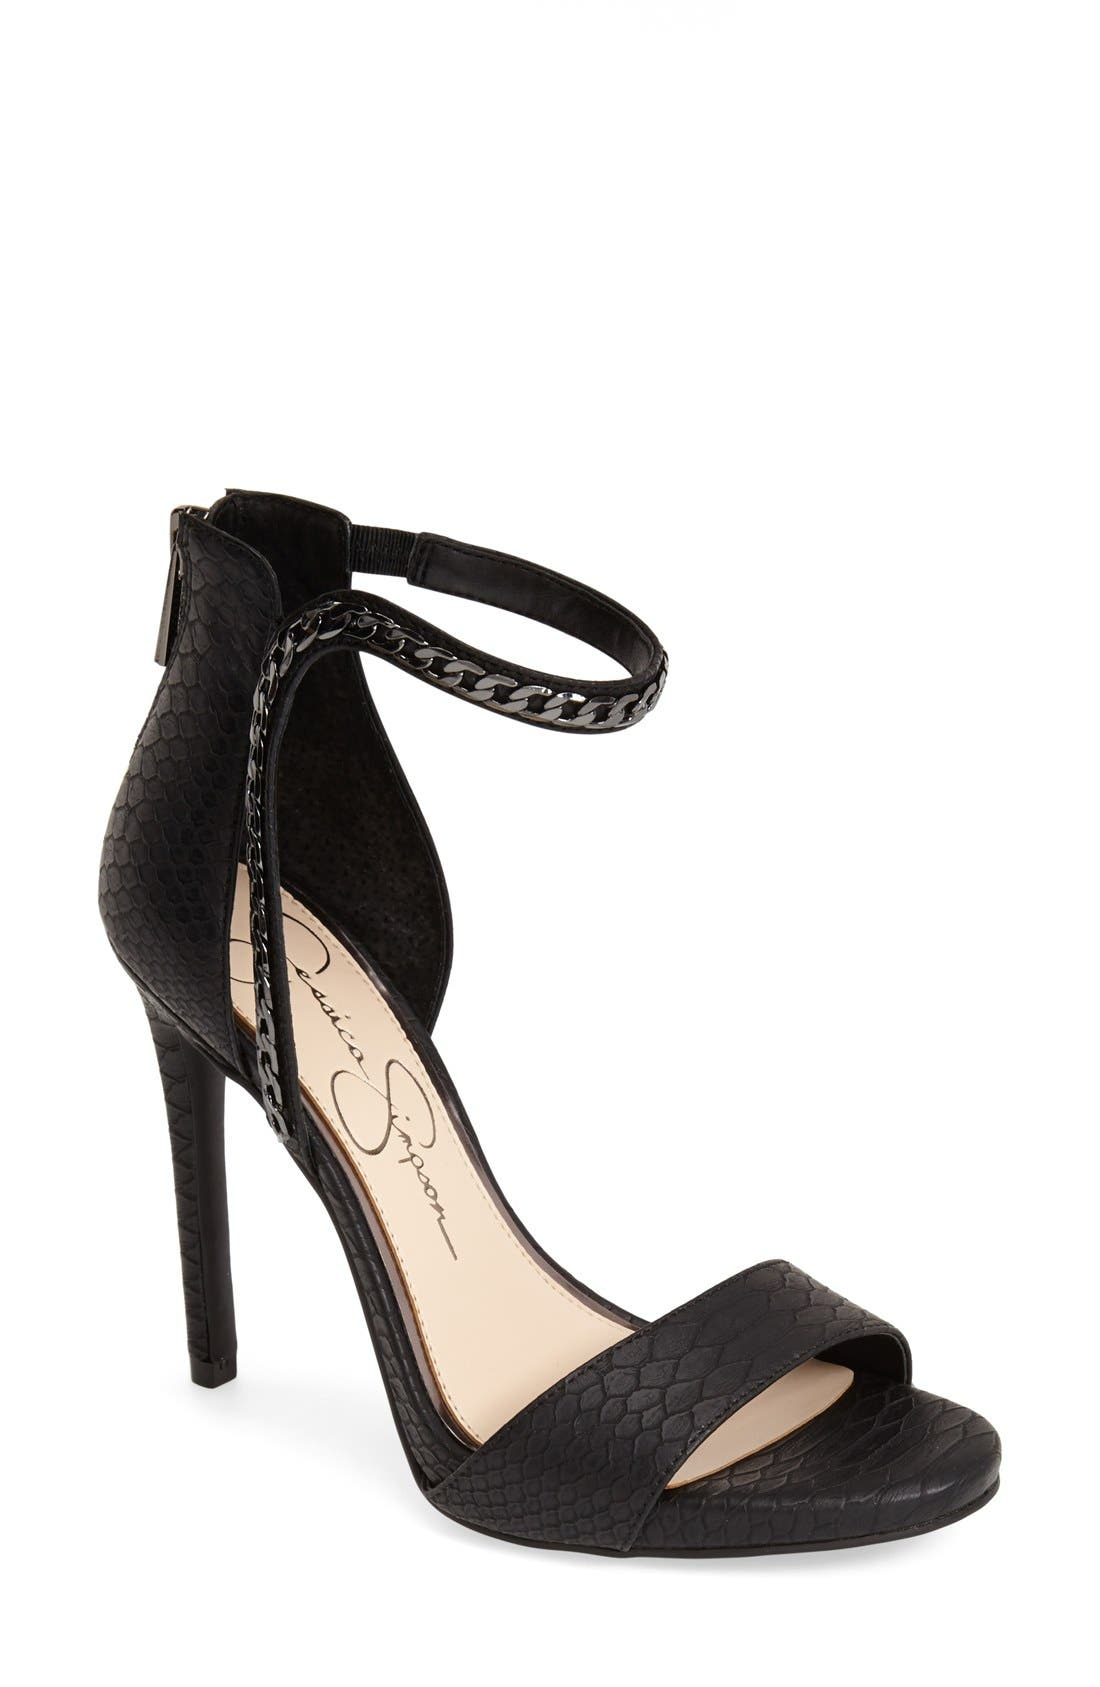 JESSICA SIMPSON 'Redith' Chain Embellished Sandal, Main, color, 001